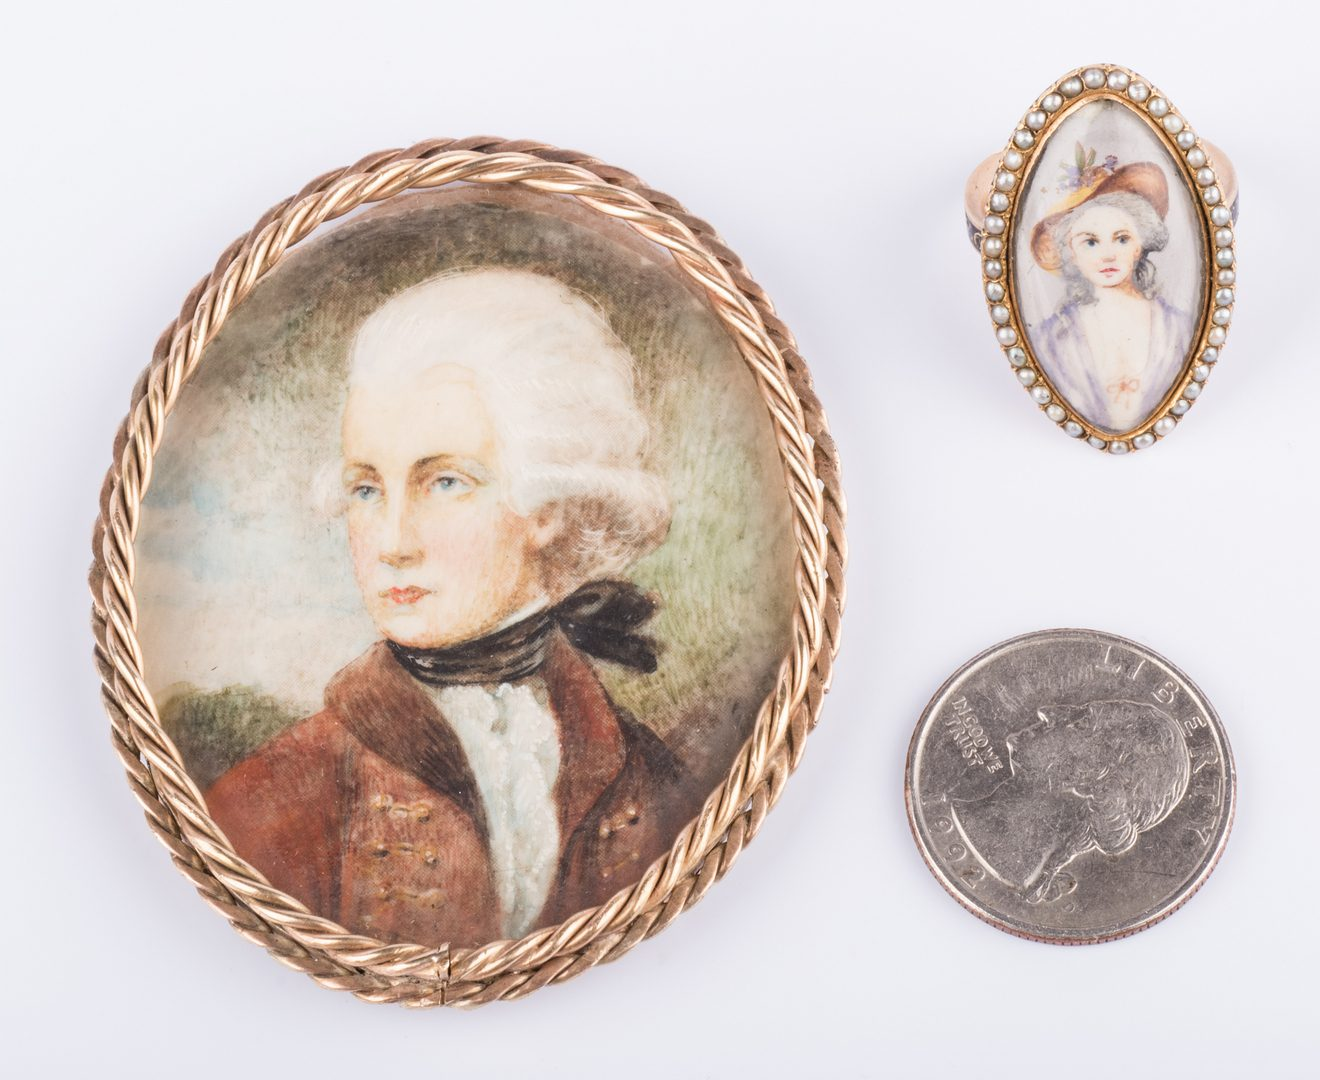 Lot 165: Mourning Portrait Ring and Miniature Portrait